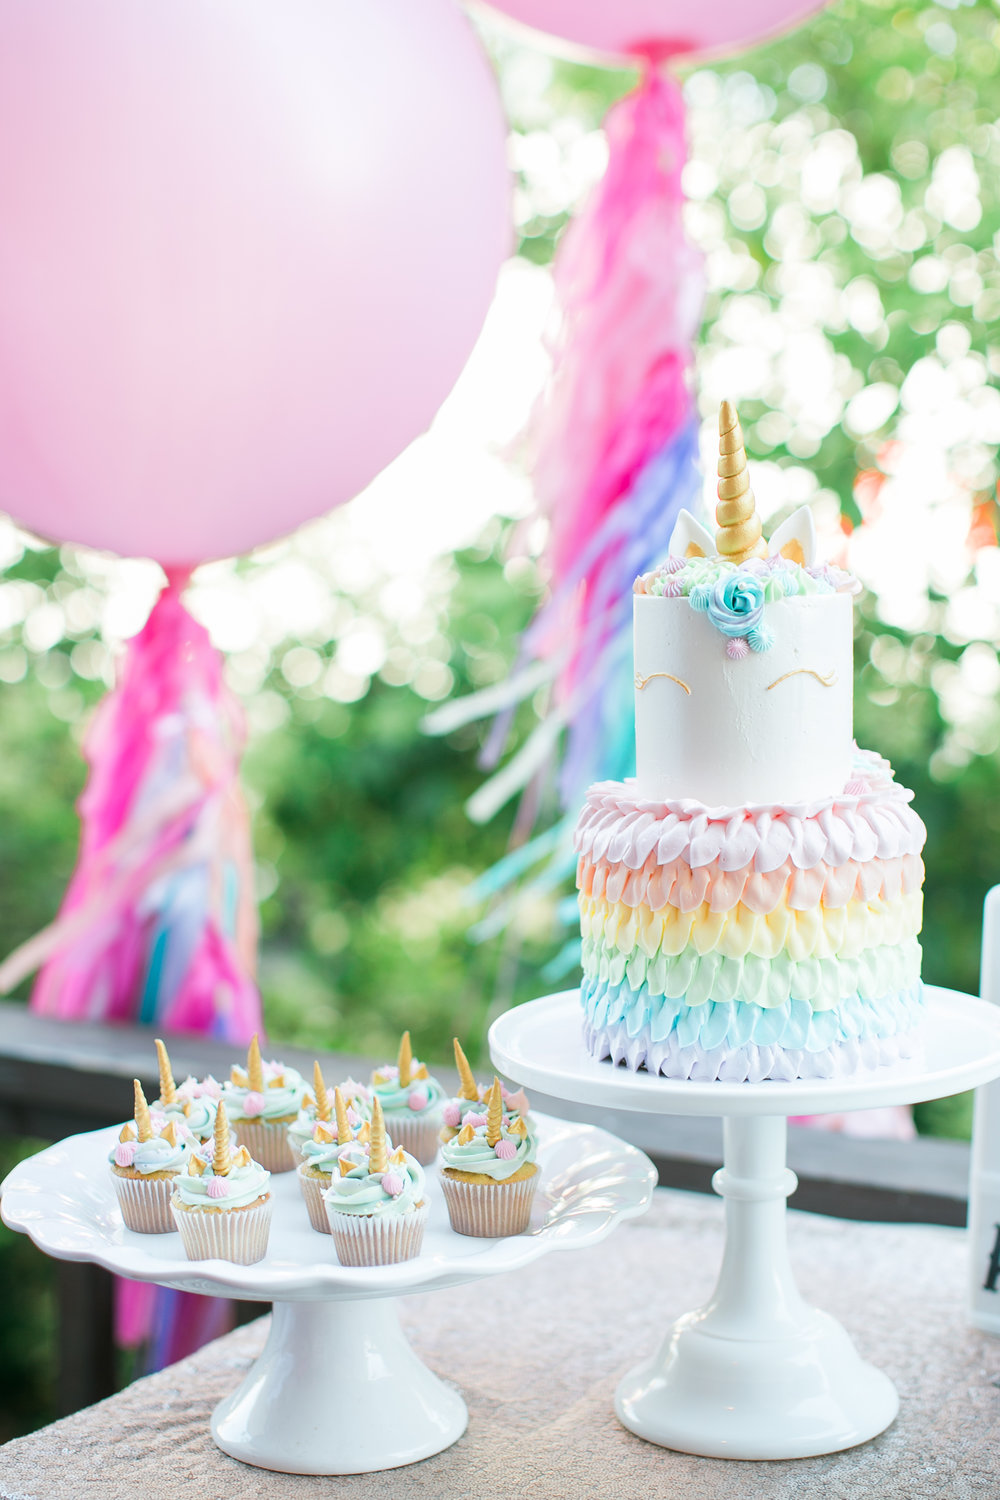 www.santabarbarawedding.com | Municipal Winery  | Pinata Workshop | Bridal Party Ideas | Pink Elephant and Co | Unicorn Cupcakes | Unicorn Cake | Unicorn Party Inspiration | Kelsey Crews Photography